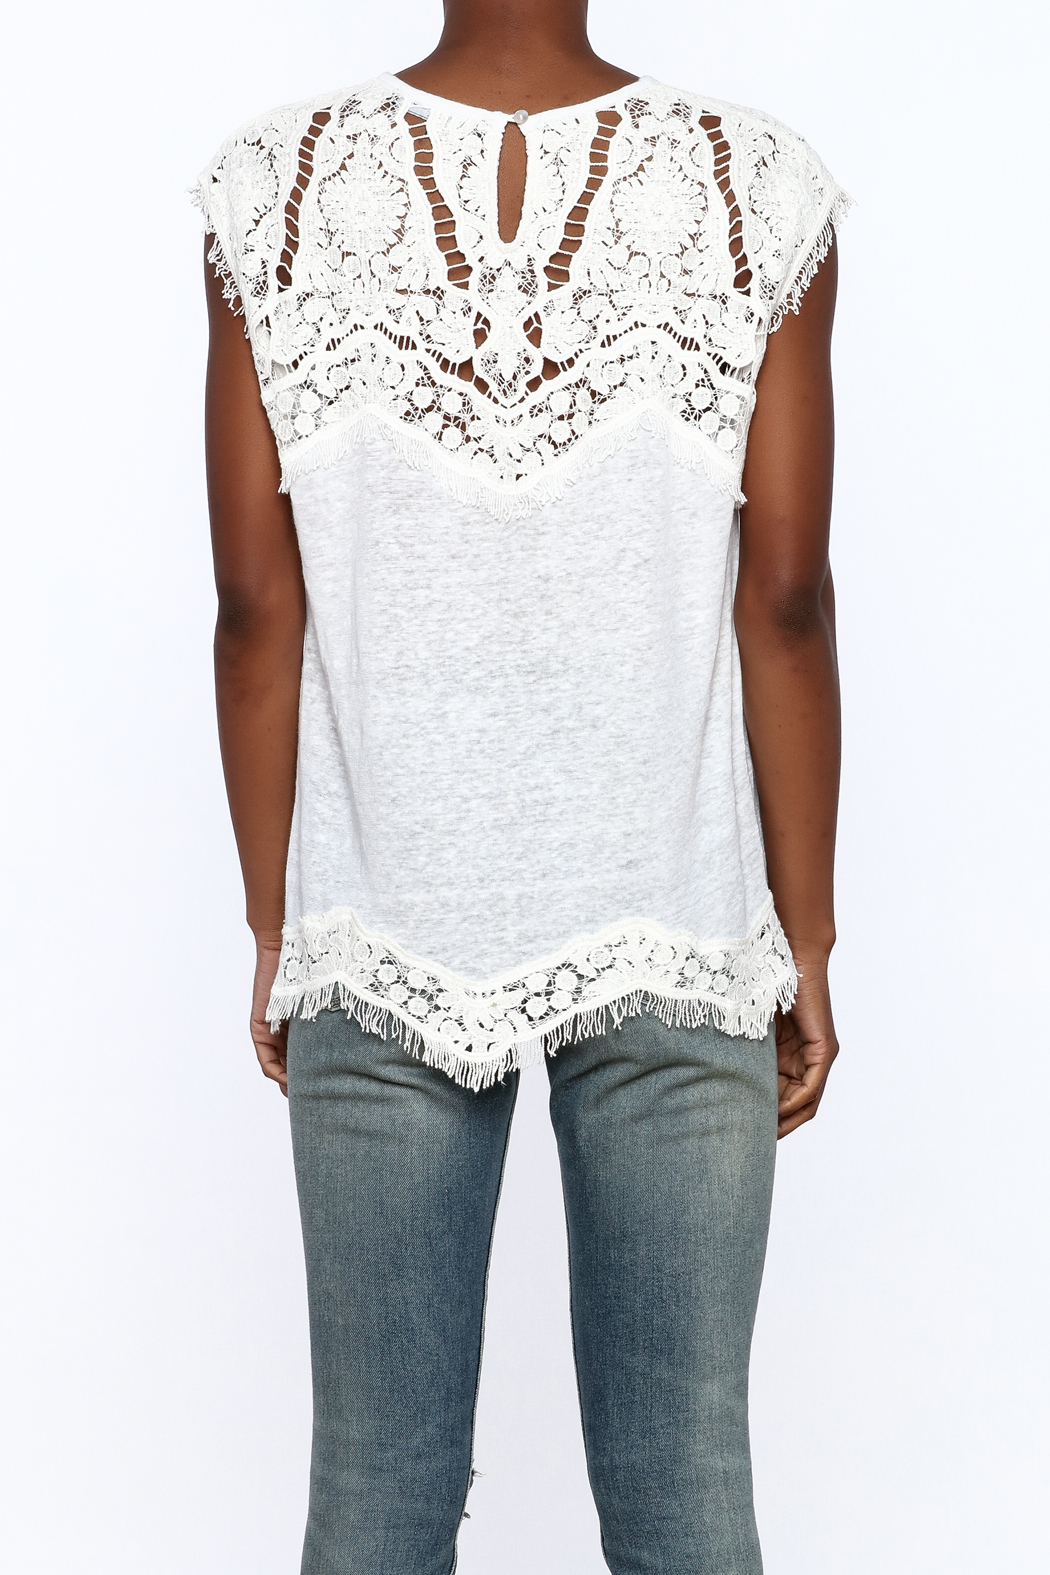 Generation Love  White Scalloped Lace Top - Back Cropped Image